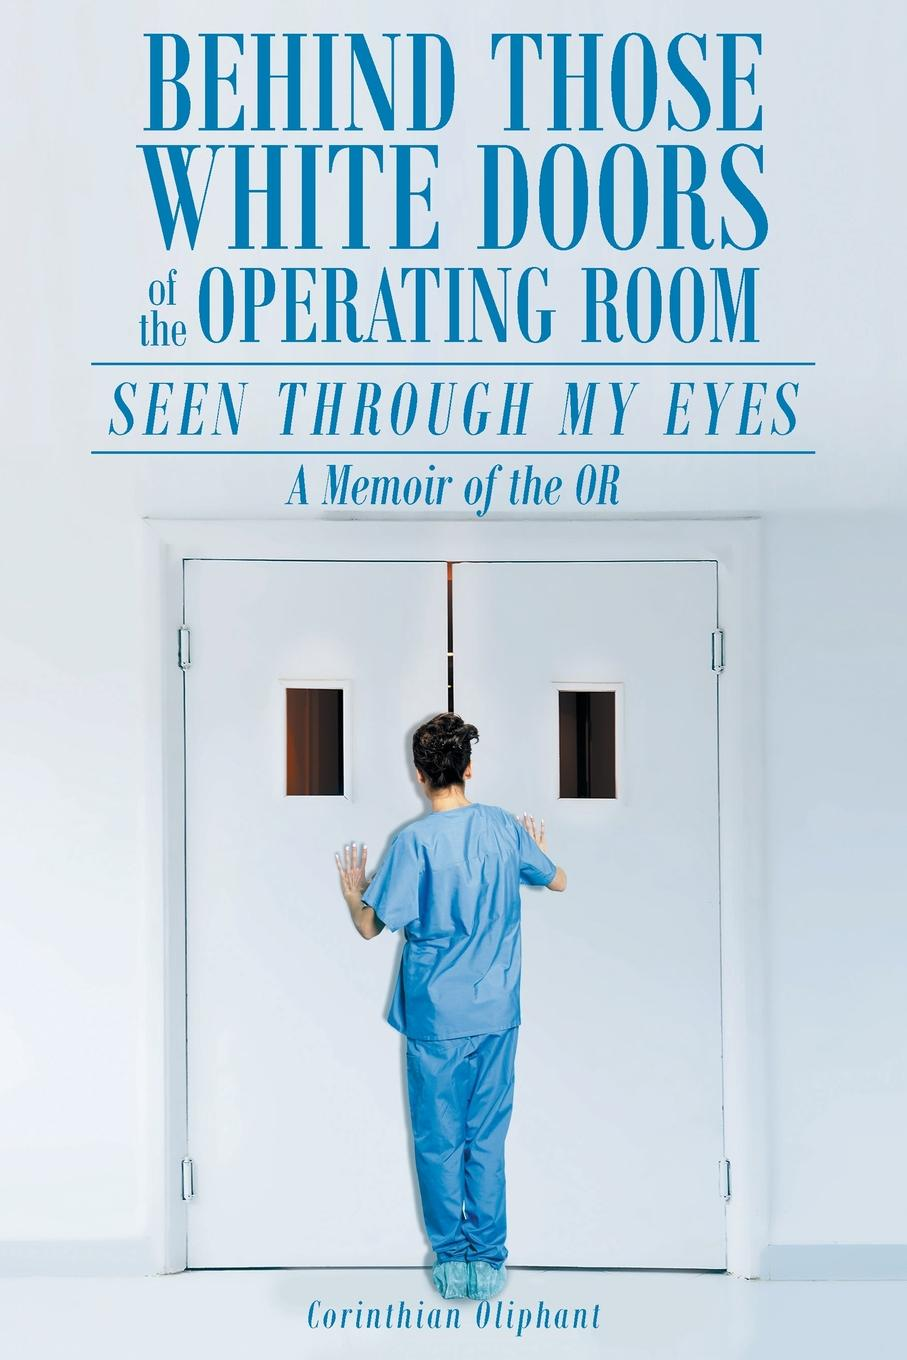 Corinthian Oliphant Behind Those White Doors of the Operating Room-Seen through My Eyes. a Memoir of the OR. fly ff179 white